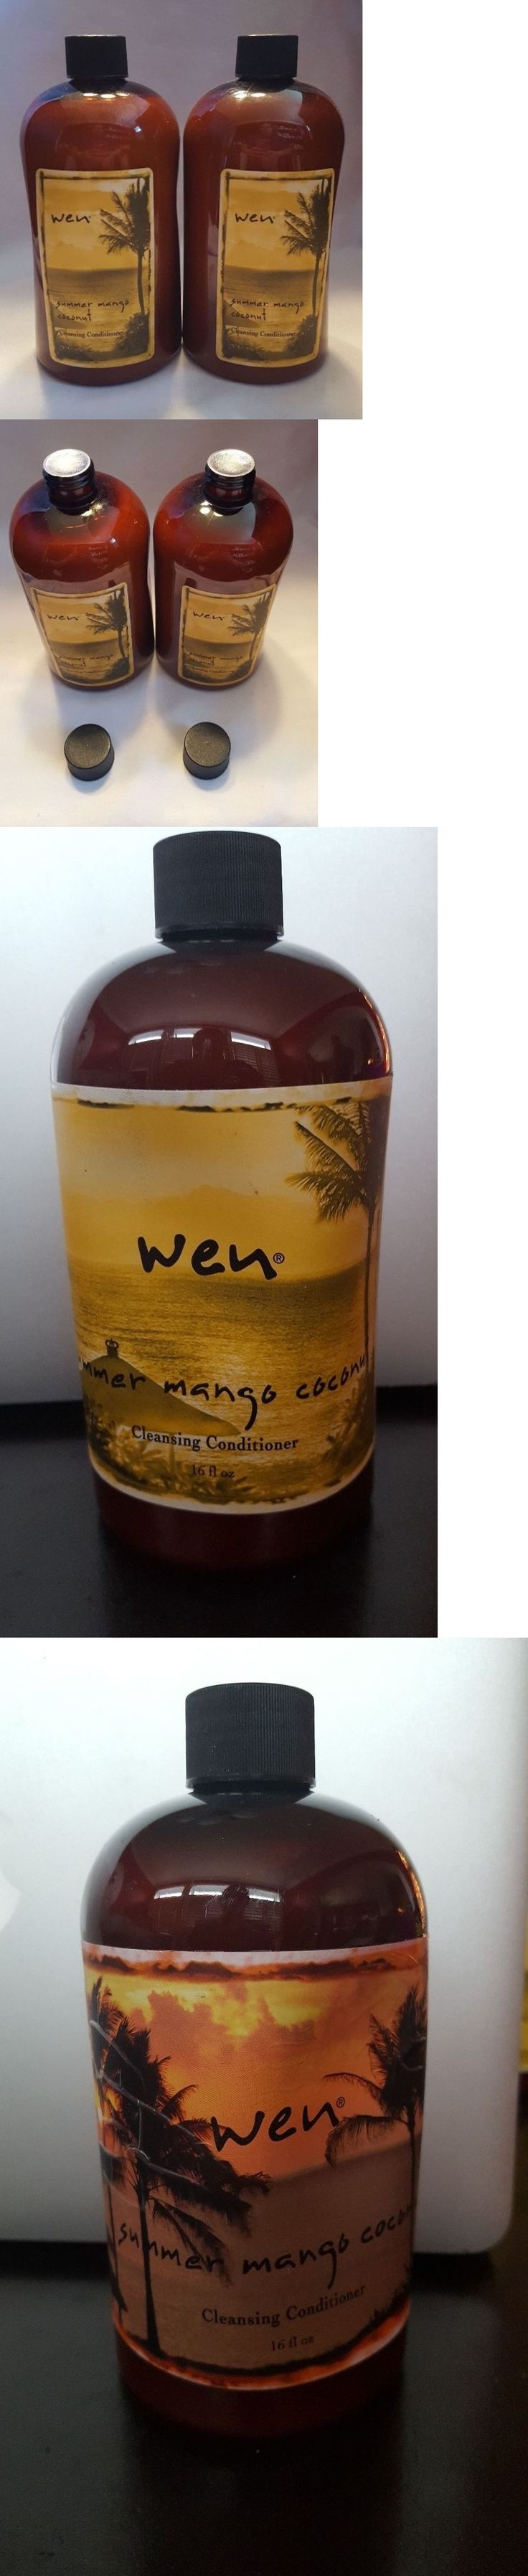 Shampoos and Conditioners: Wen Summer Mango Coconut Cleansing Conditioner Lot Of 2~16 Oz~ New And Sealed -> BUY IT NOW ONLY: $49.99 on eBay!